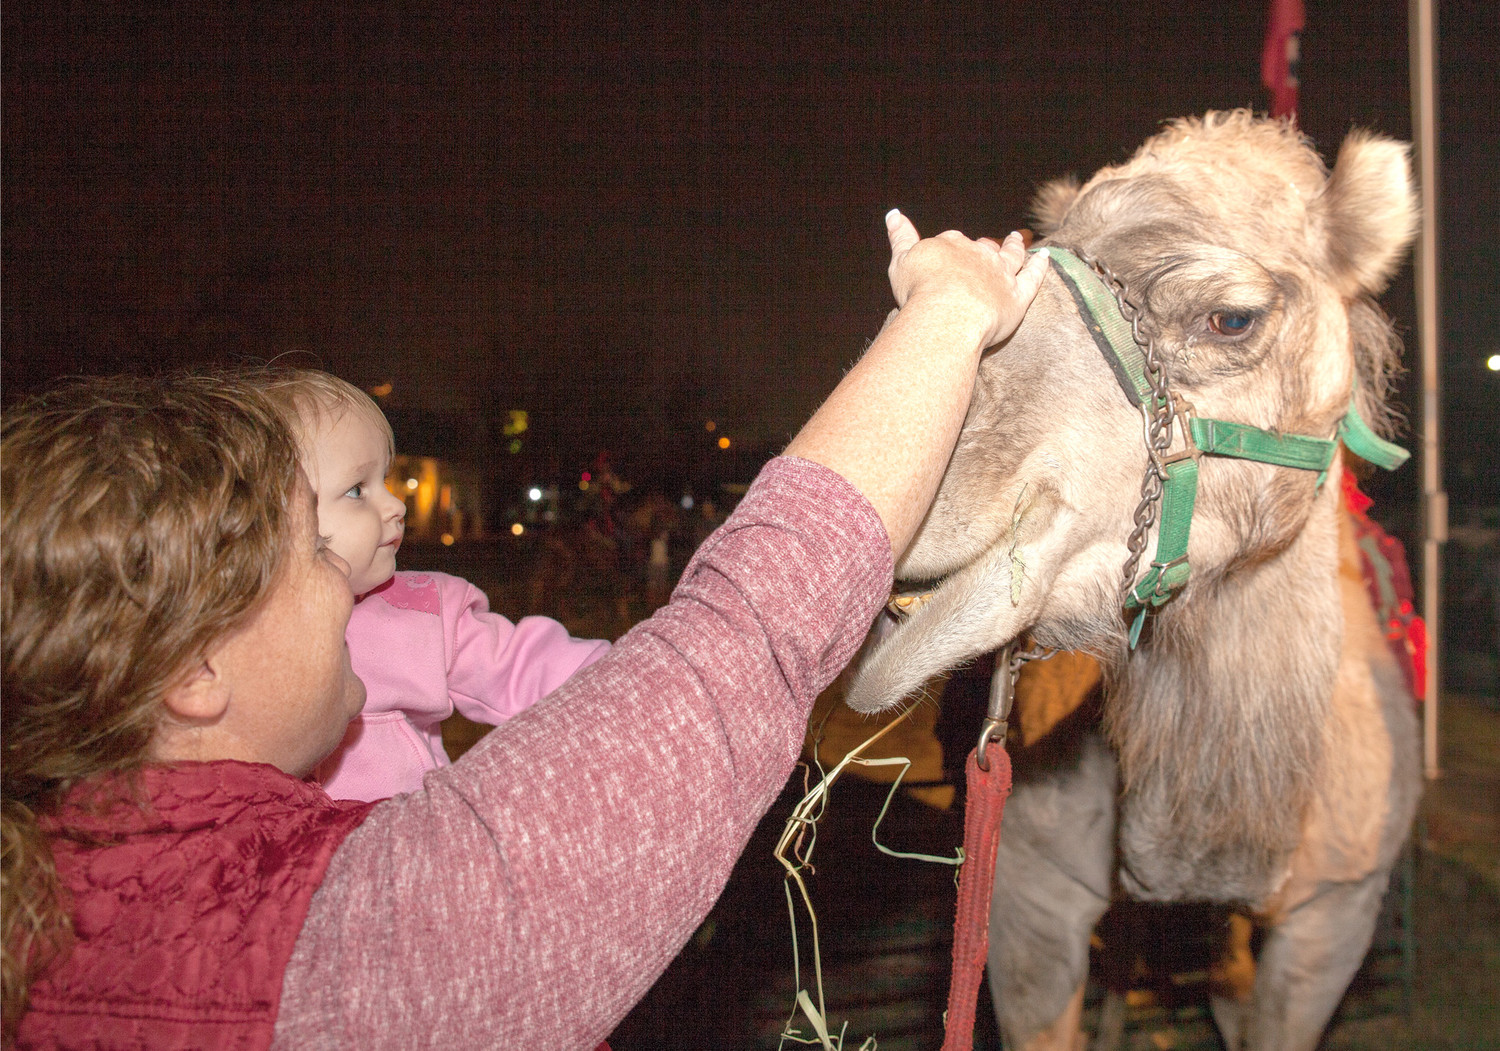 KAREN BROTHERTON, left, and little Paisley Rhoden, center, pet one of the camels during the nativity event Thursday night.